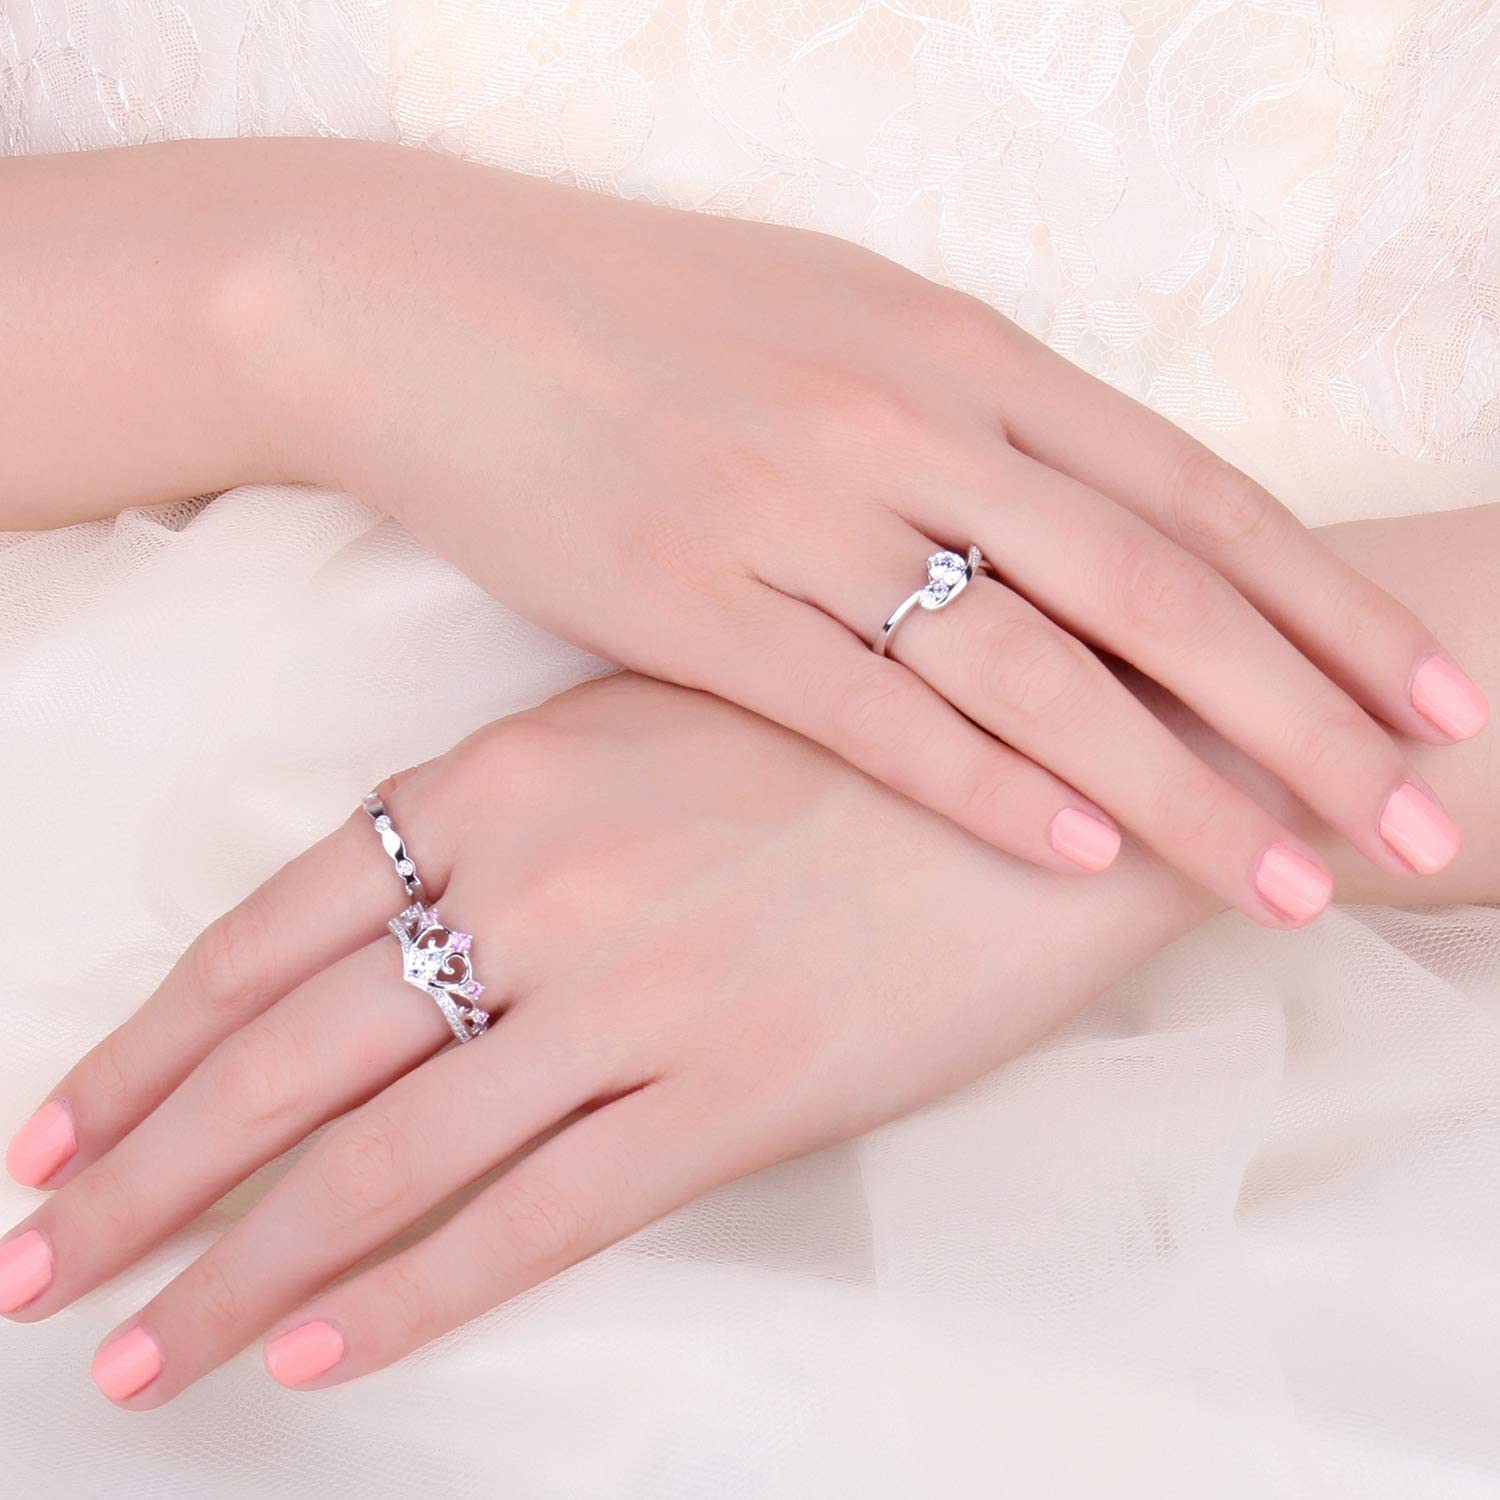 JewelryPalaceInfinity Heart Princess Crown Channel Cubic Zirconia Created Pink Sapphire Anniversary Promise Wedding Engagement Ring 925 Sterling Silver